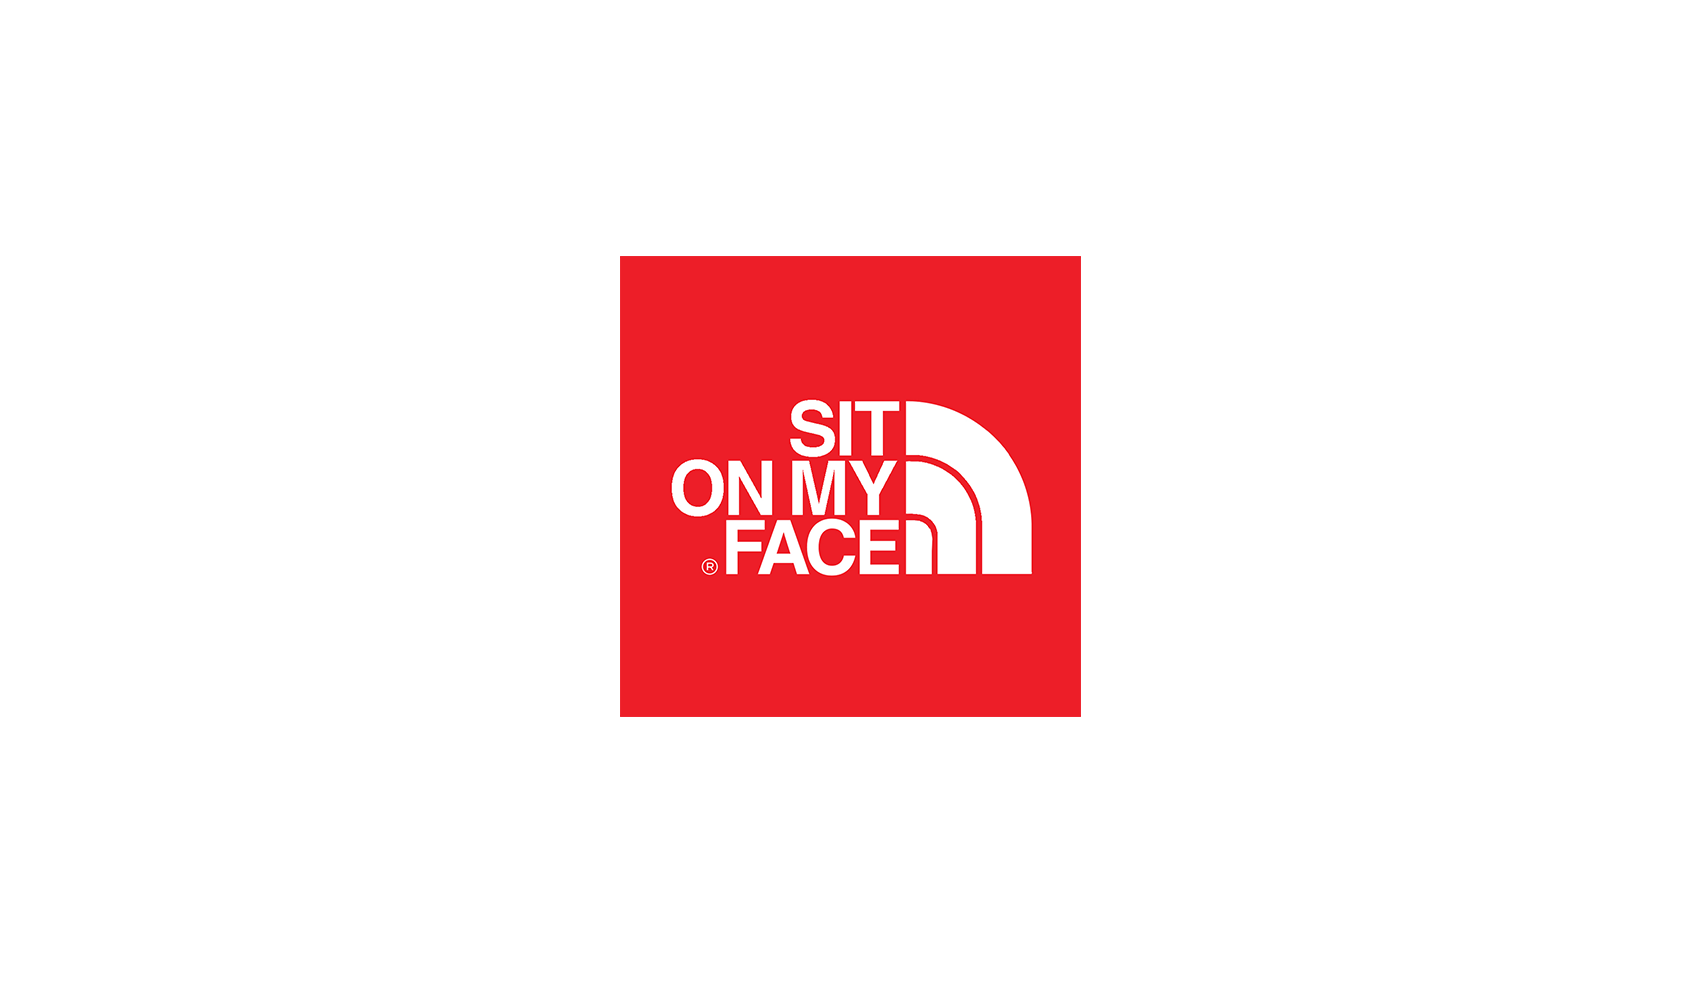 sit-on-my-face-north-face-logo-flip-ethan-solouki